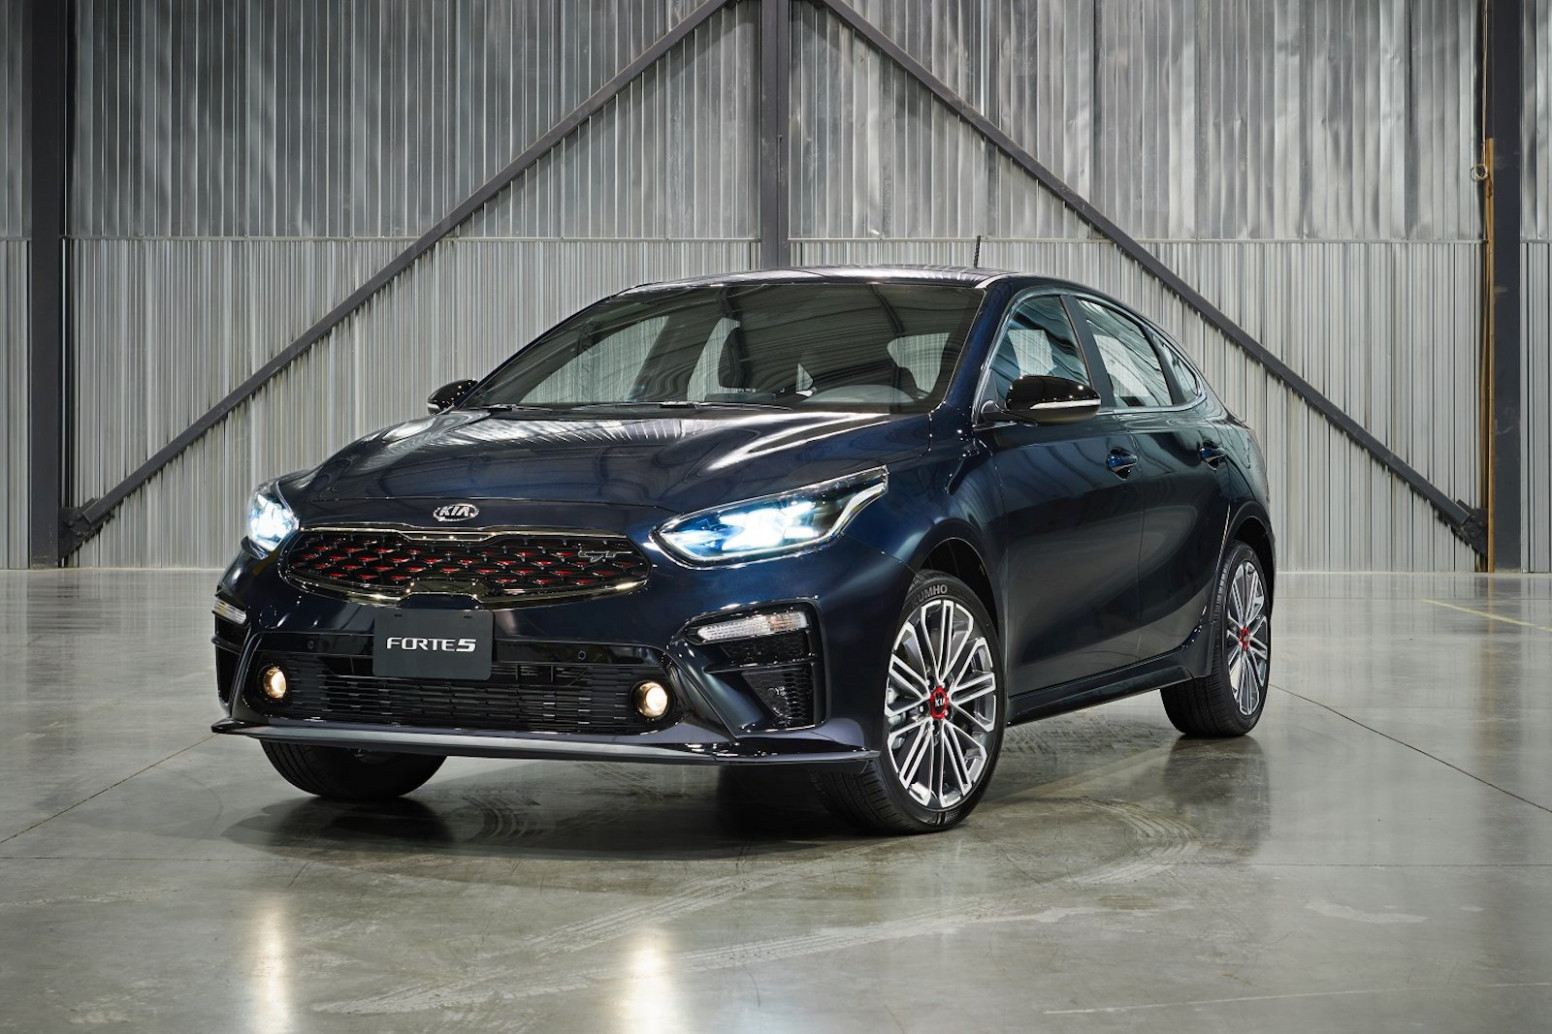 11 Kia Forte11 Debuts as a Handsome Hatchback » AutoGuide.com News